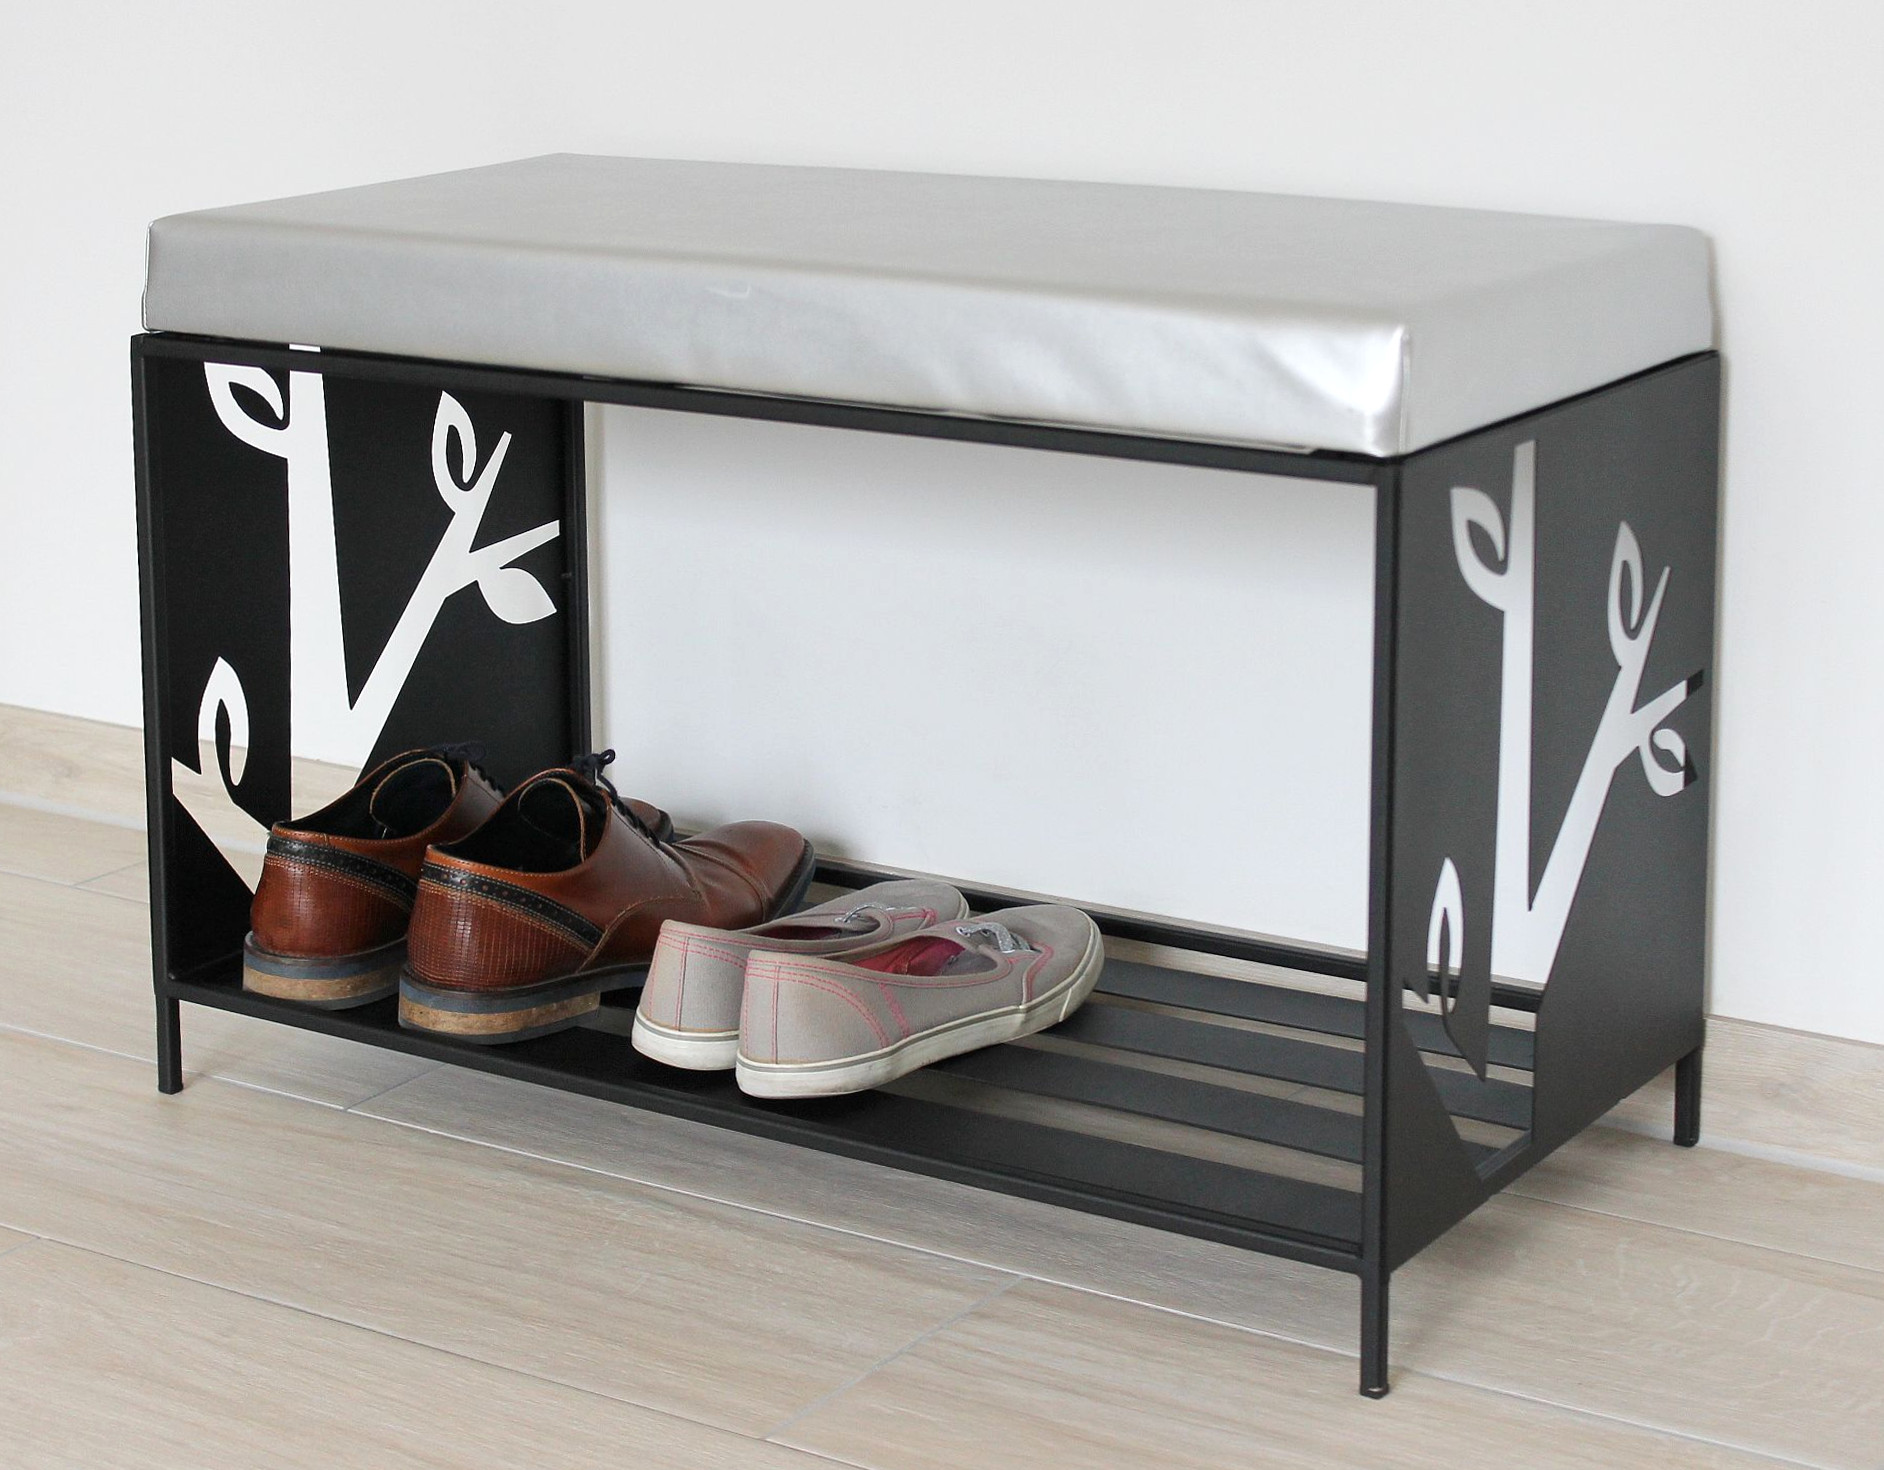 dandibo schuhregal mit sitzfl che metall schwarz 70 cm 10. Black Bedroom Furniture Sets. Home Design Ideas